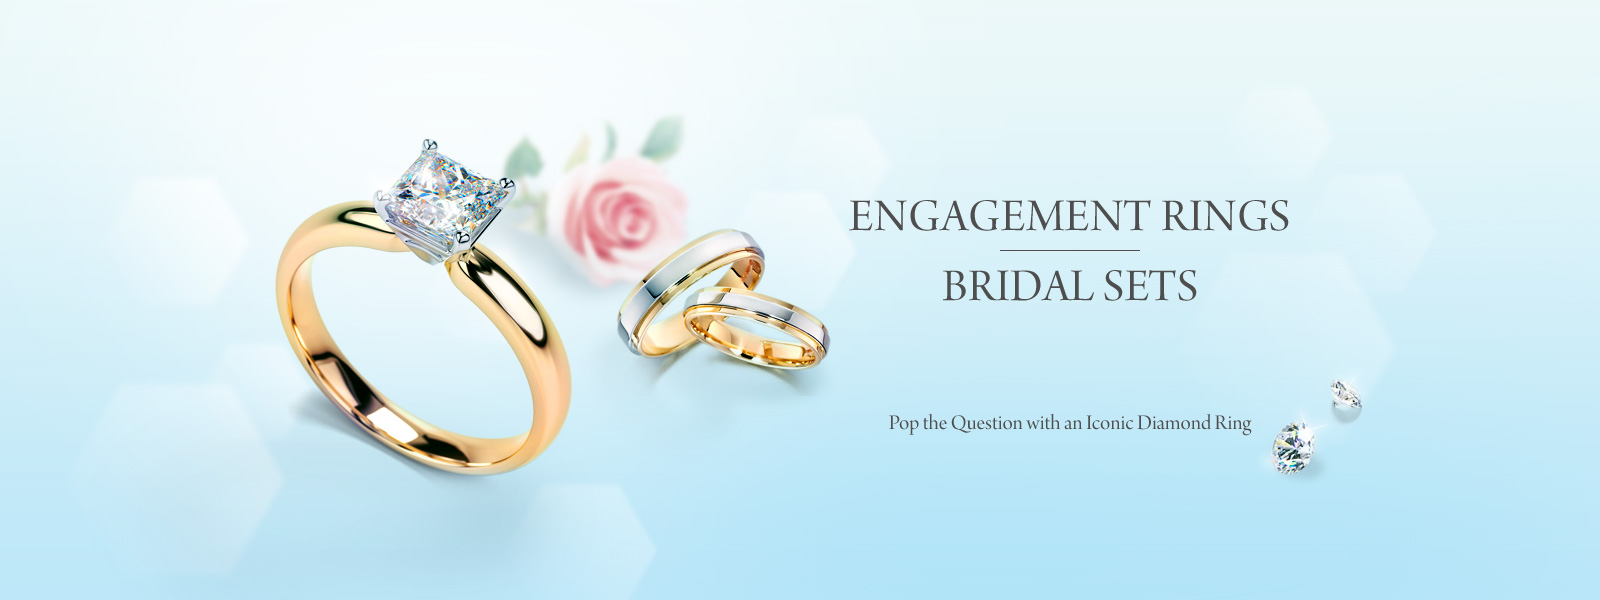 Engagement Rings & Bridal Sets